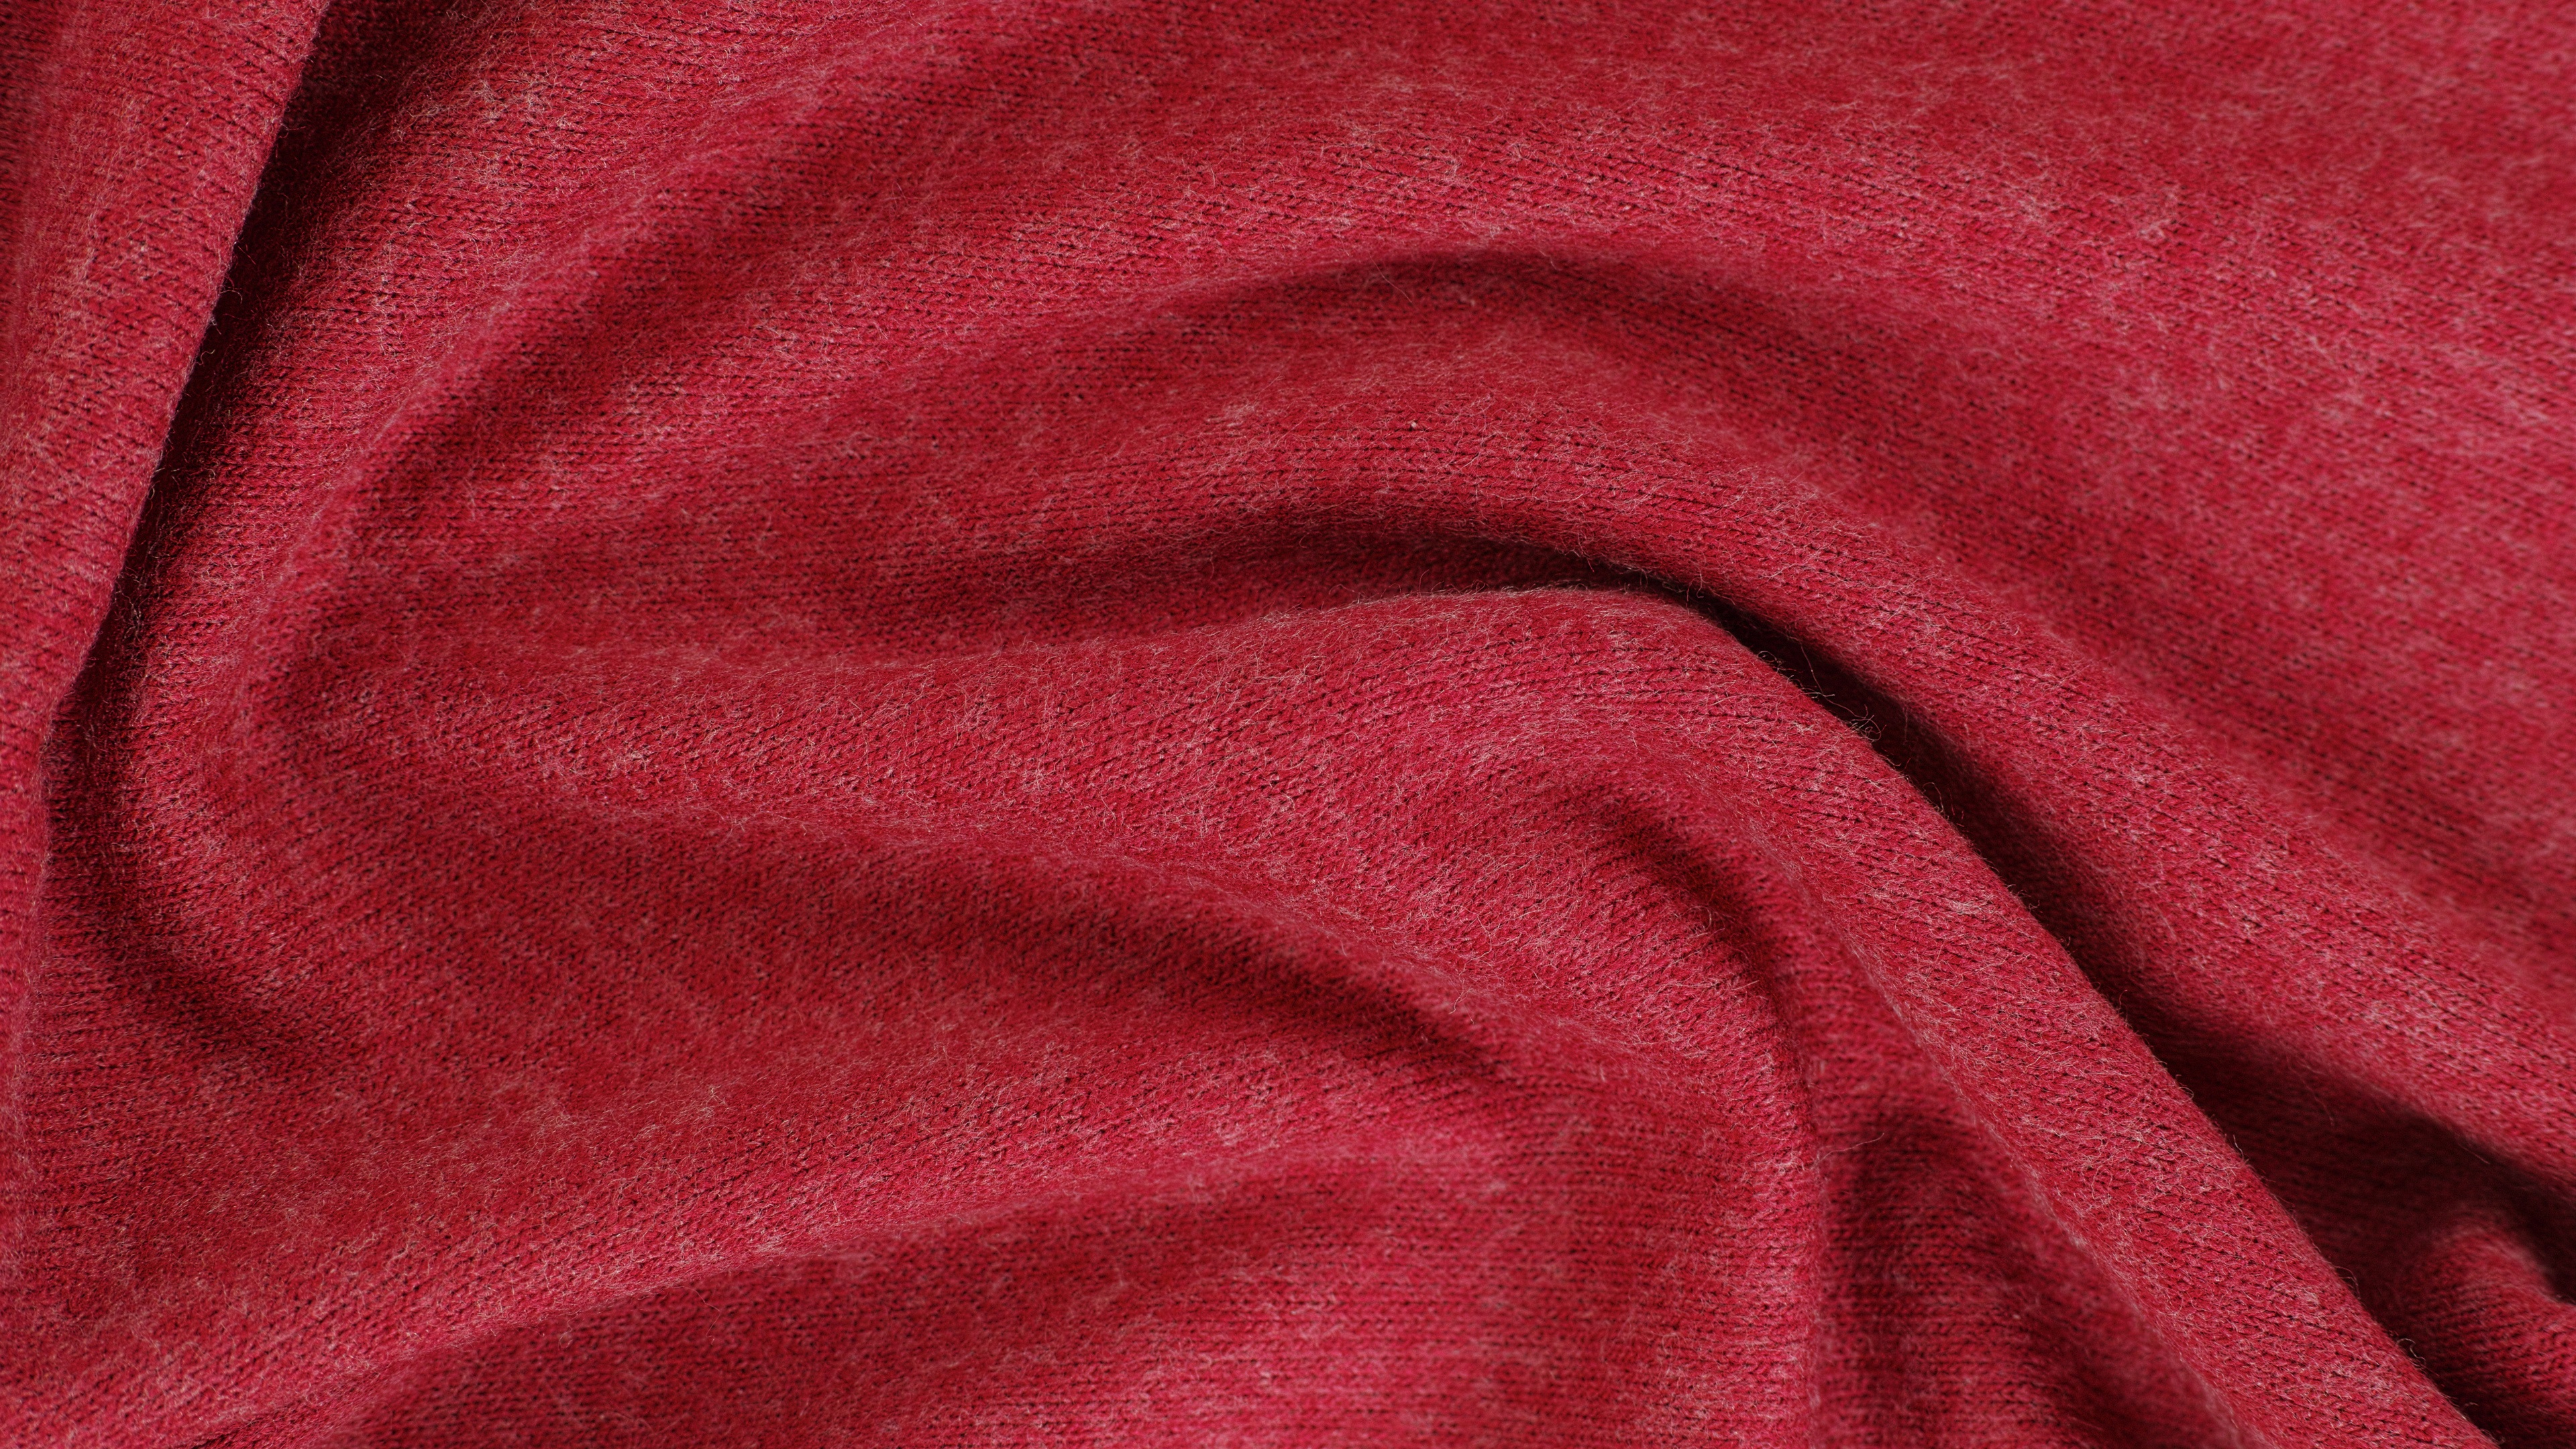 Wallpaper Red Fabric Texture 3840x2160 UHD 4K Picture Image